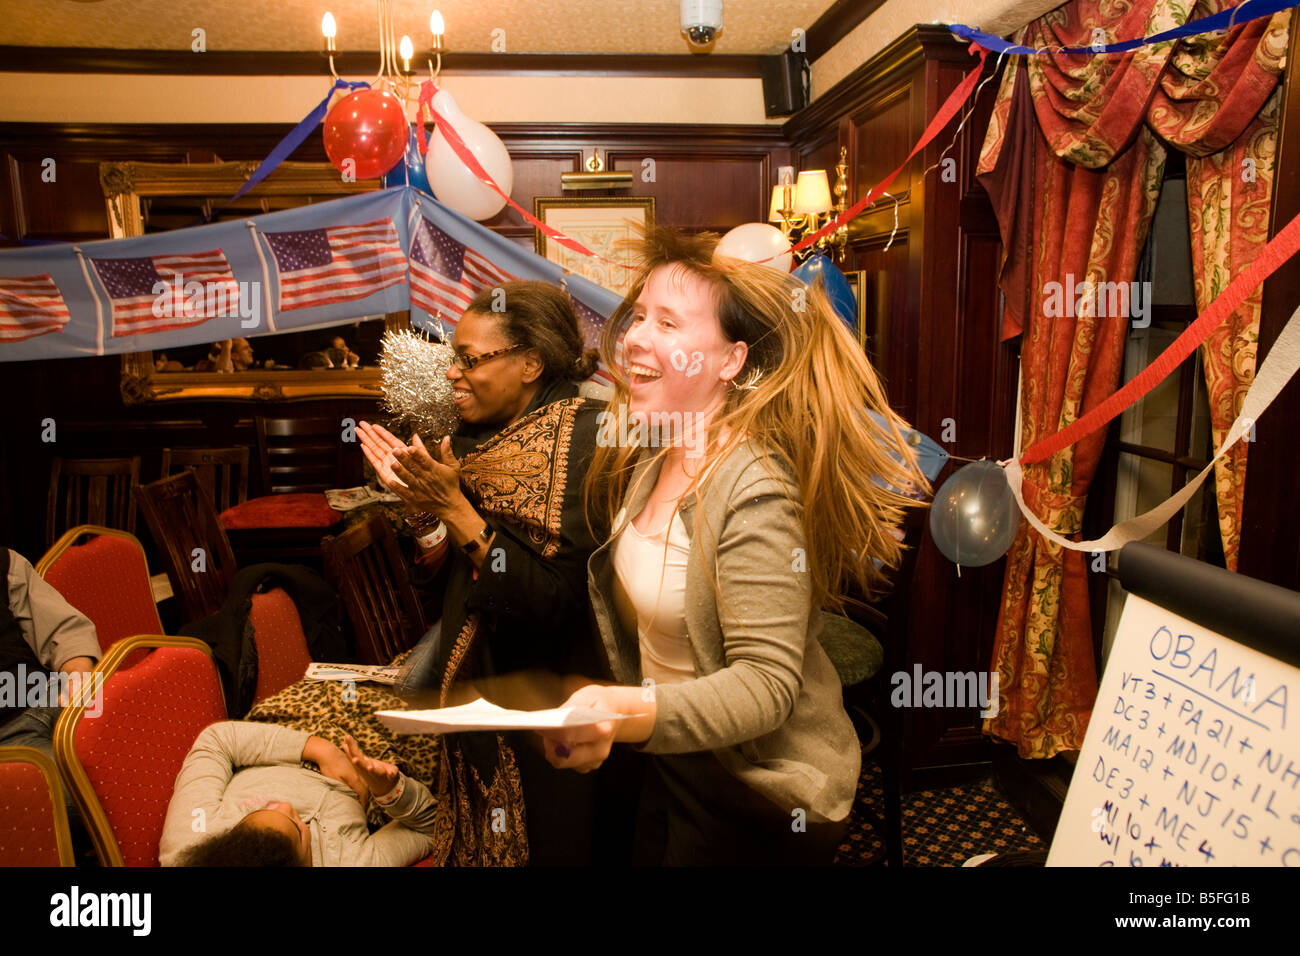 Democrat members celebrate as Barack Obama is declared winner of another US state during overnight election party - Stock Image